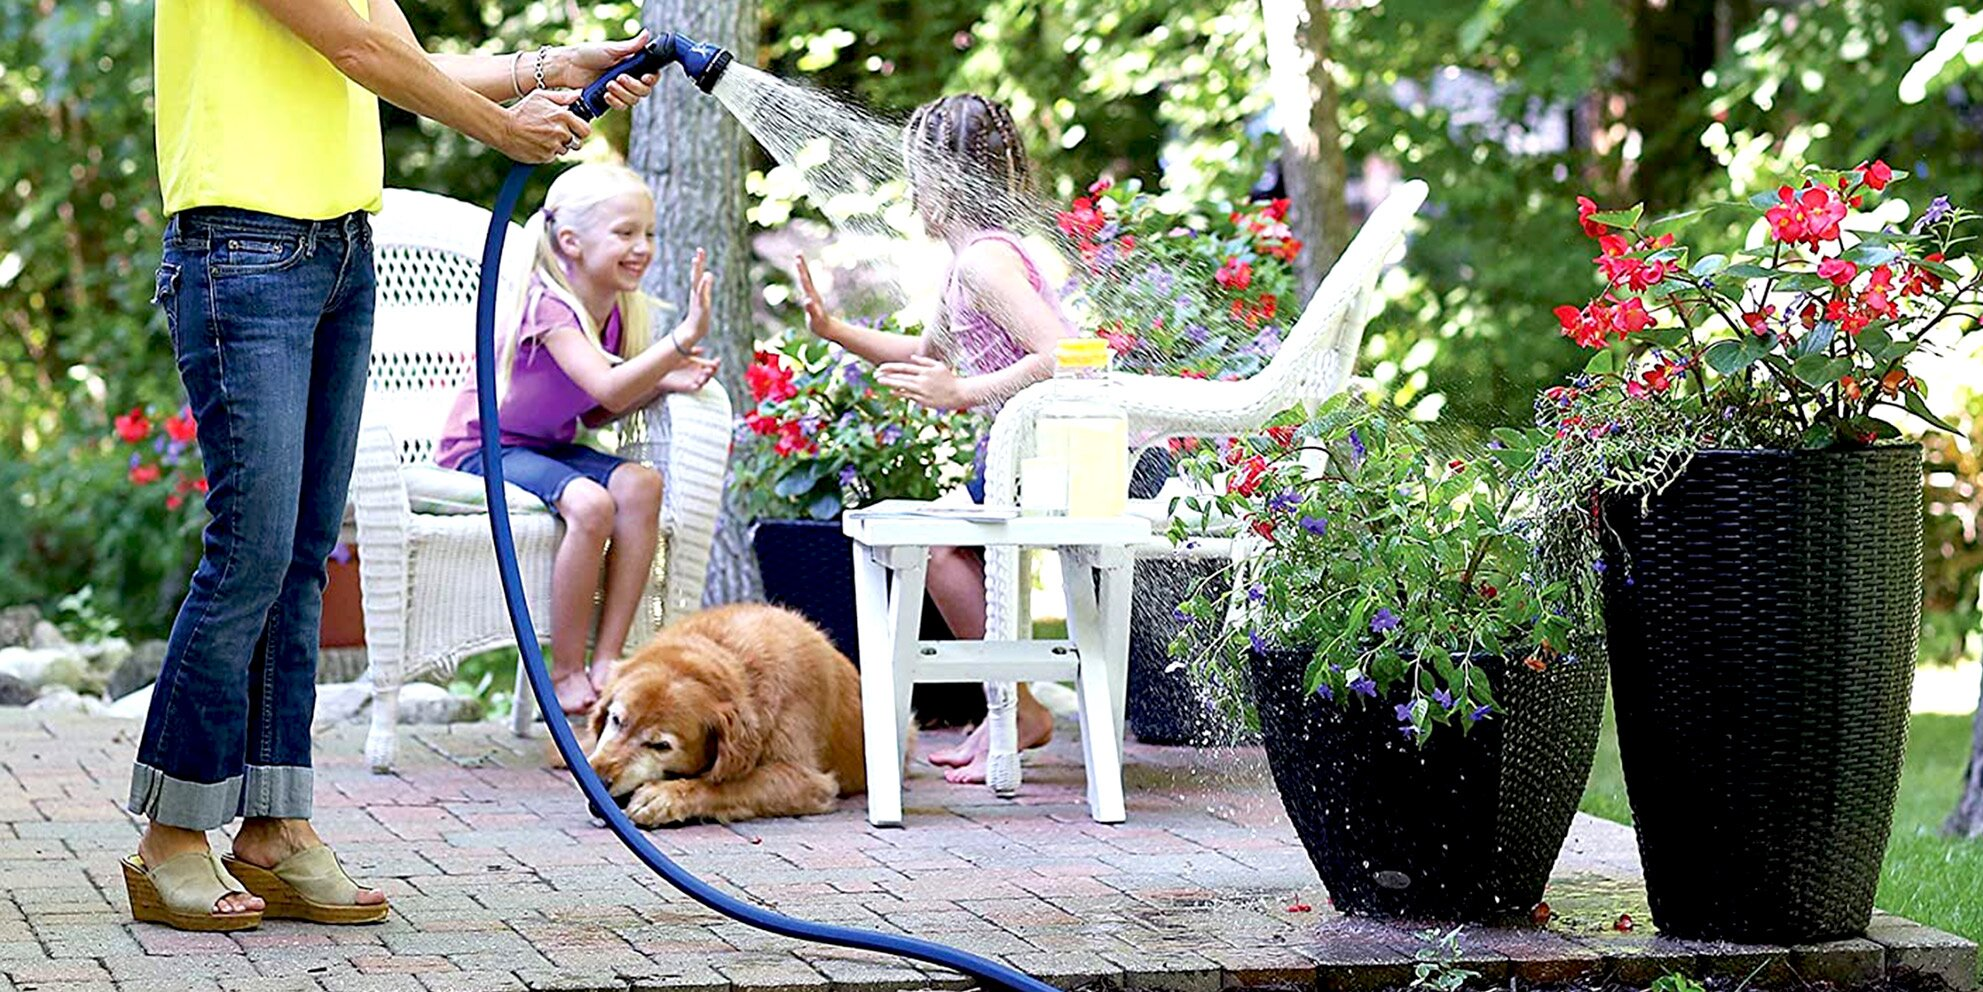 The 10 Best Garden Hoses for Watering All Your Plants